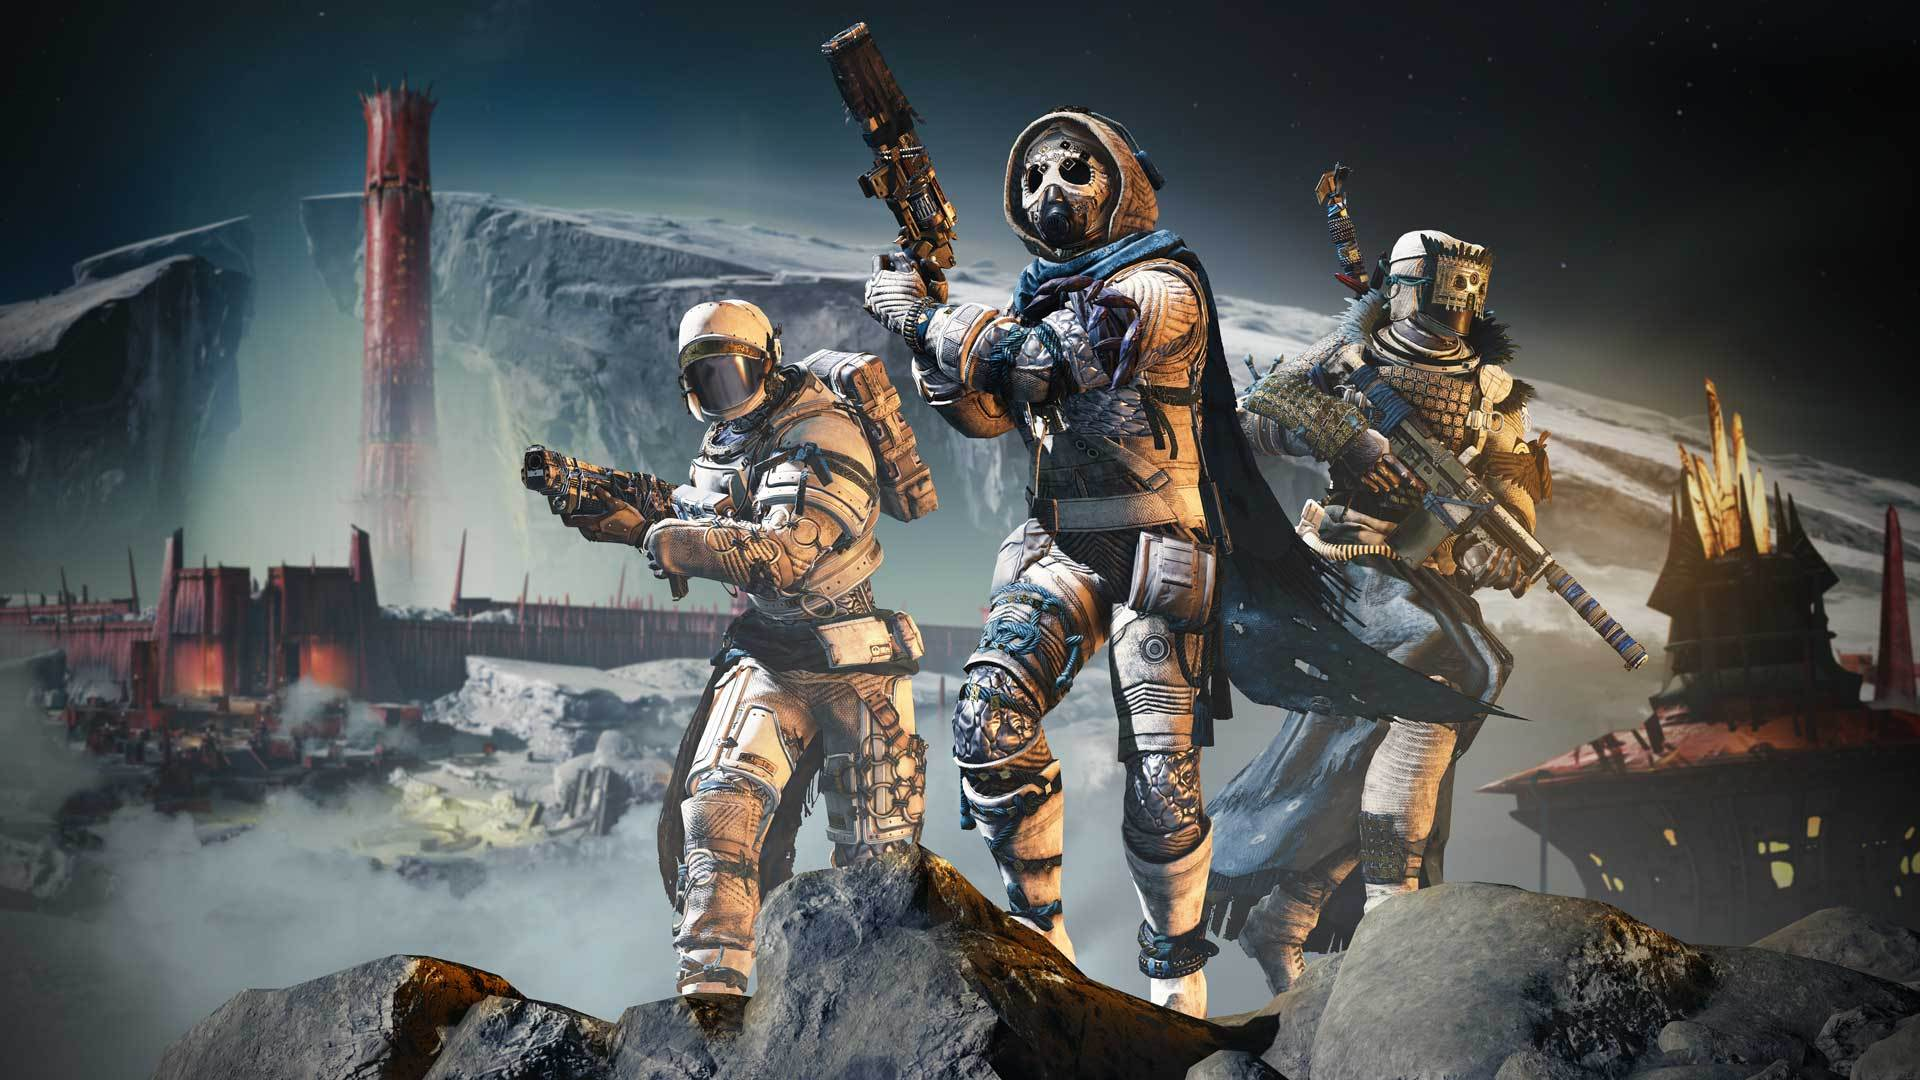 Destiny 2: Shadowkeep (Steam Code for PC) – Bungie Store